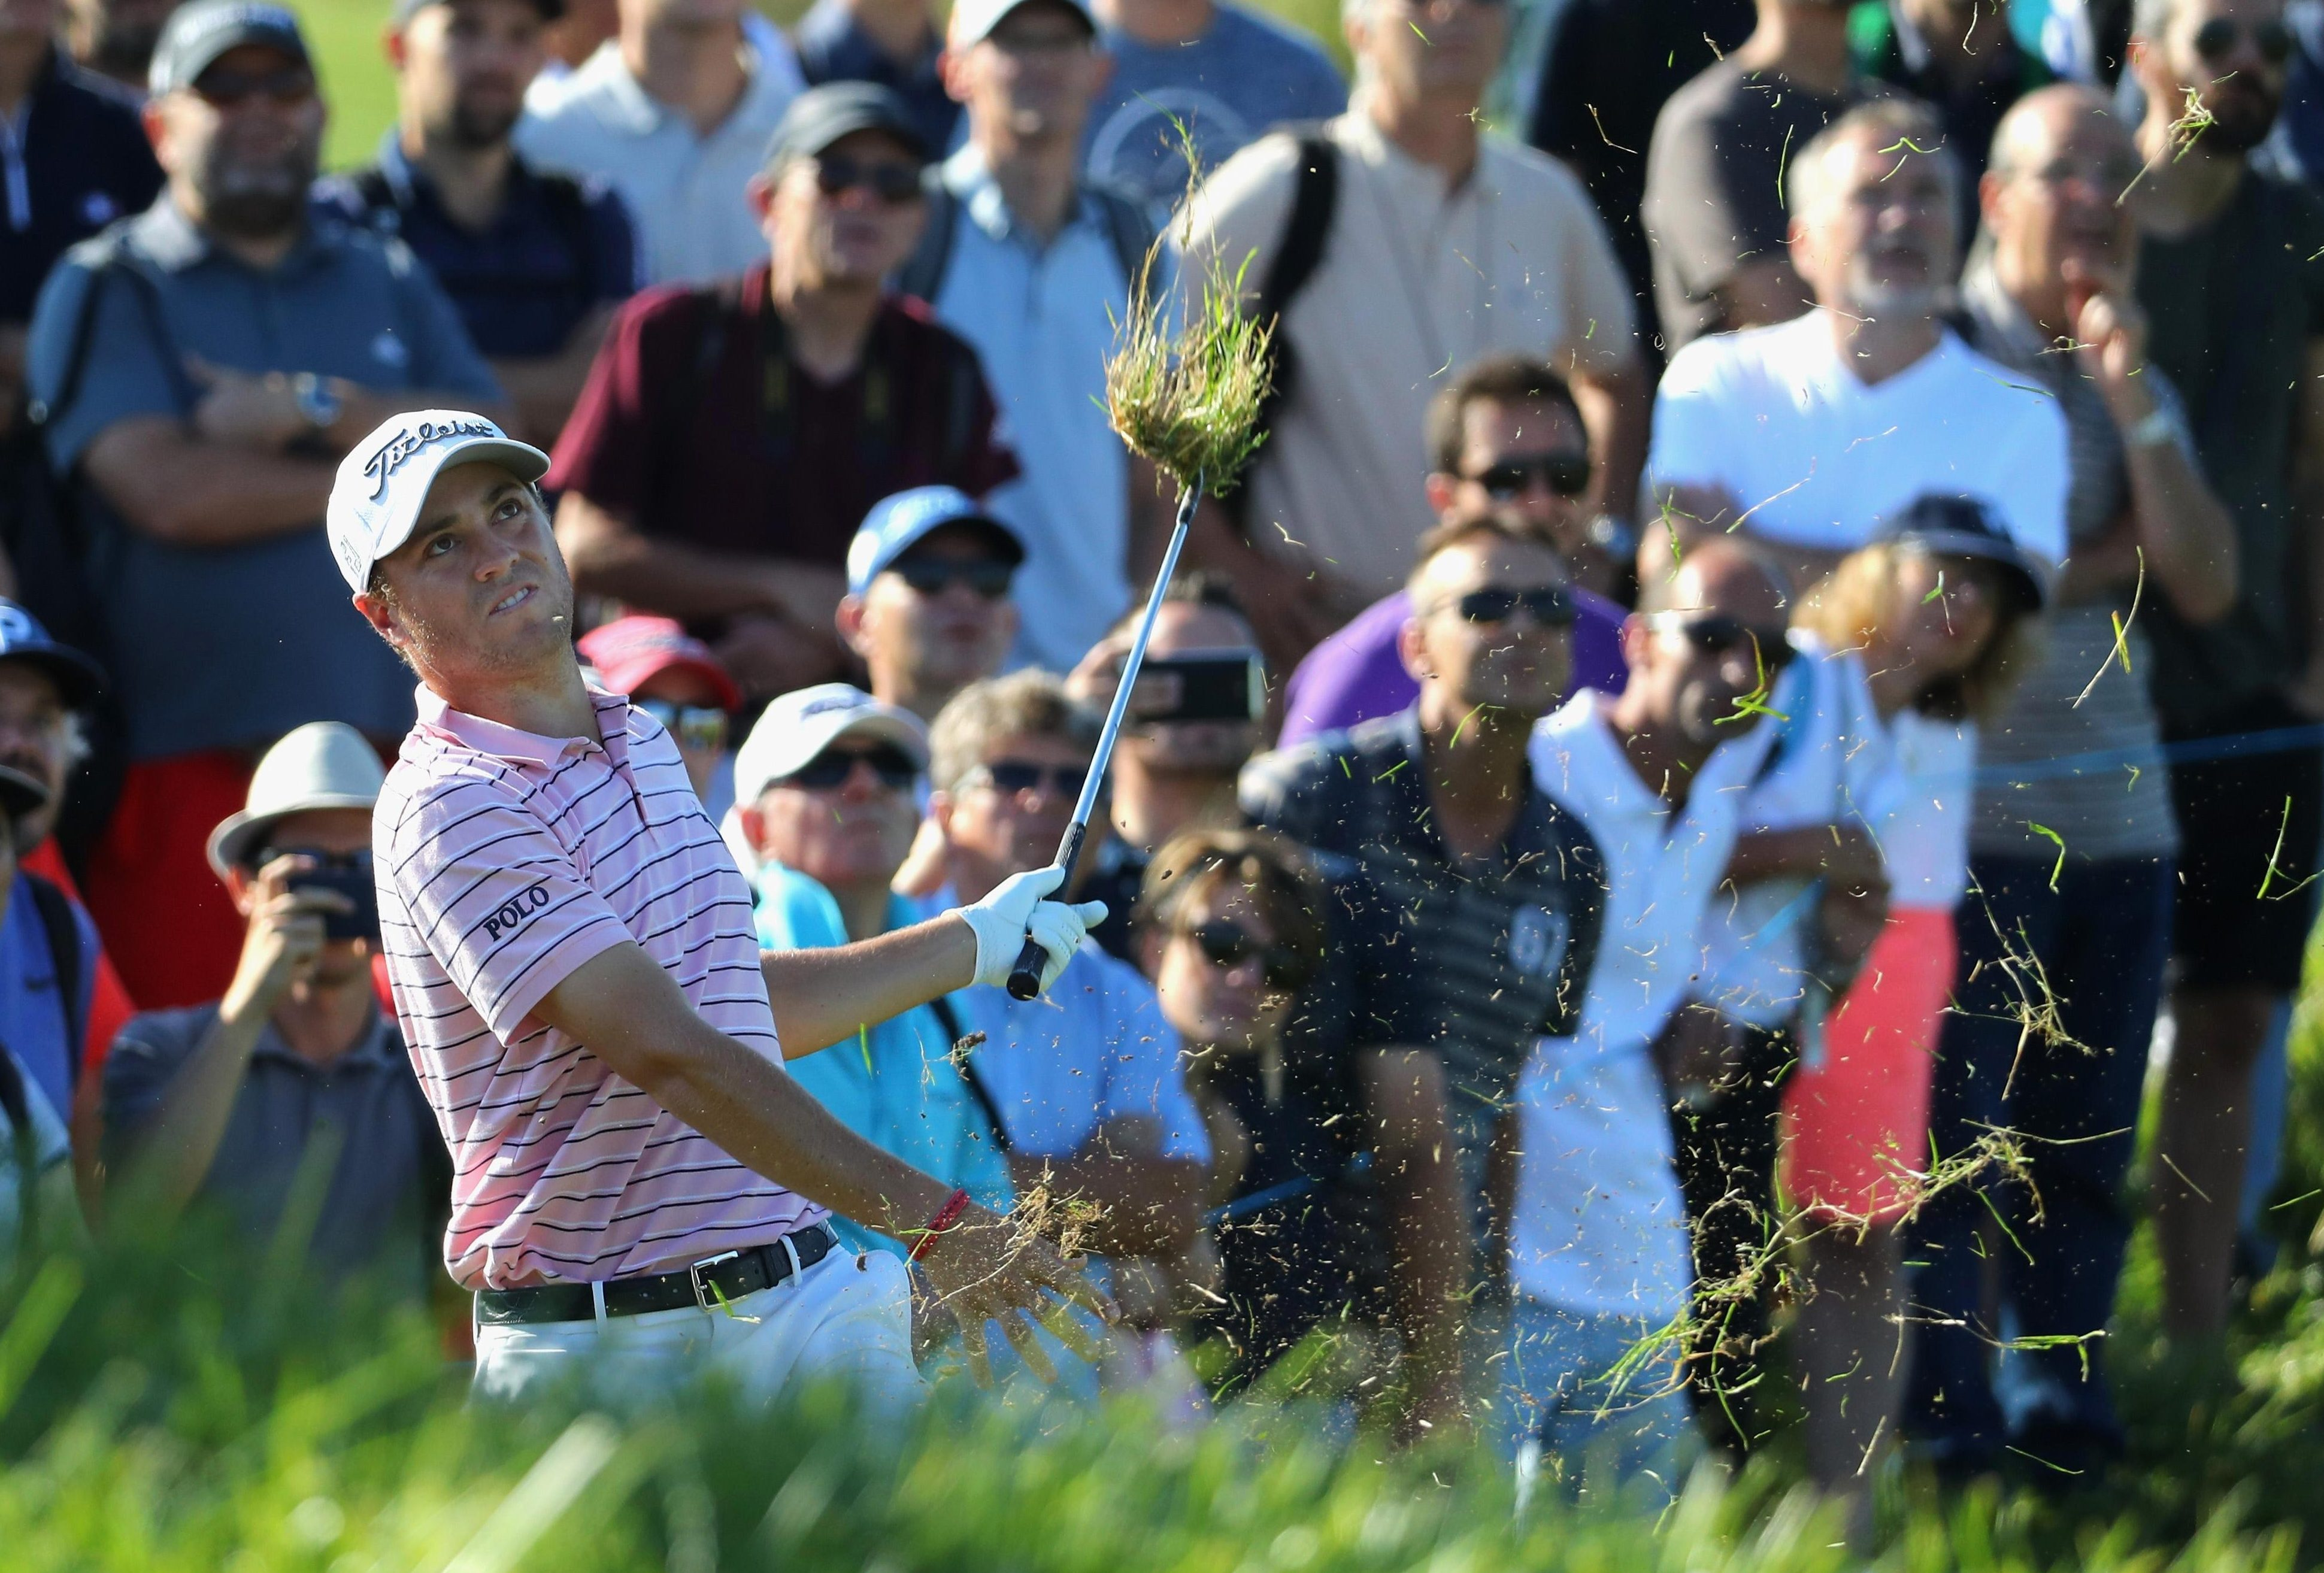 Justin Thomas is getting an early look at Le Golf National and the European fans in France